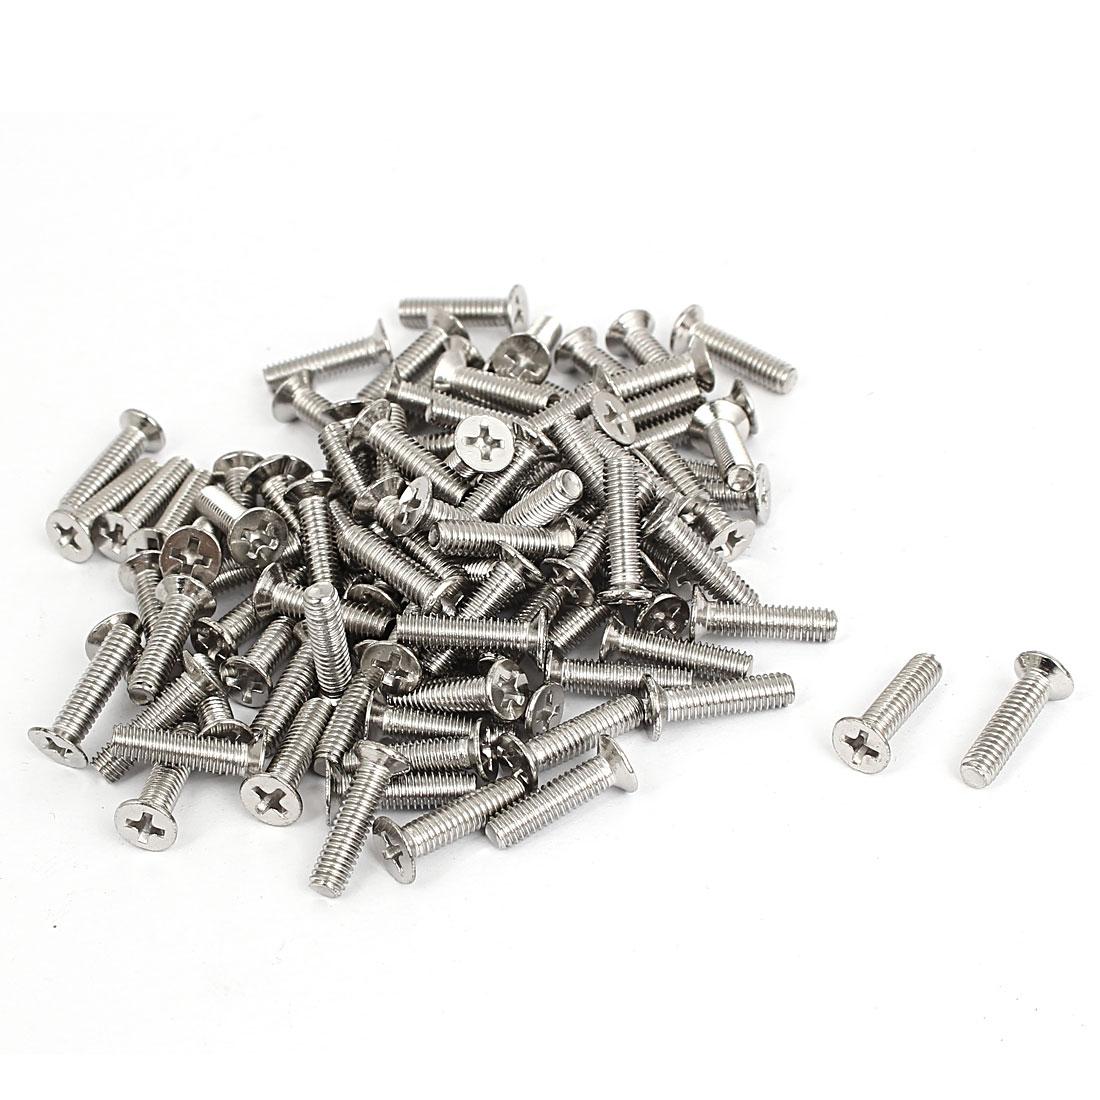 M4x16mm Stainless Steel Countersunk Flat Head Cross Phillips Screw Bolts 100pcs